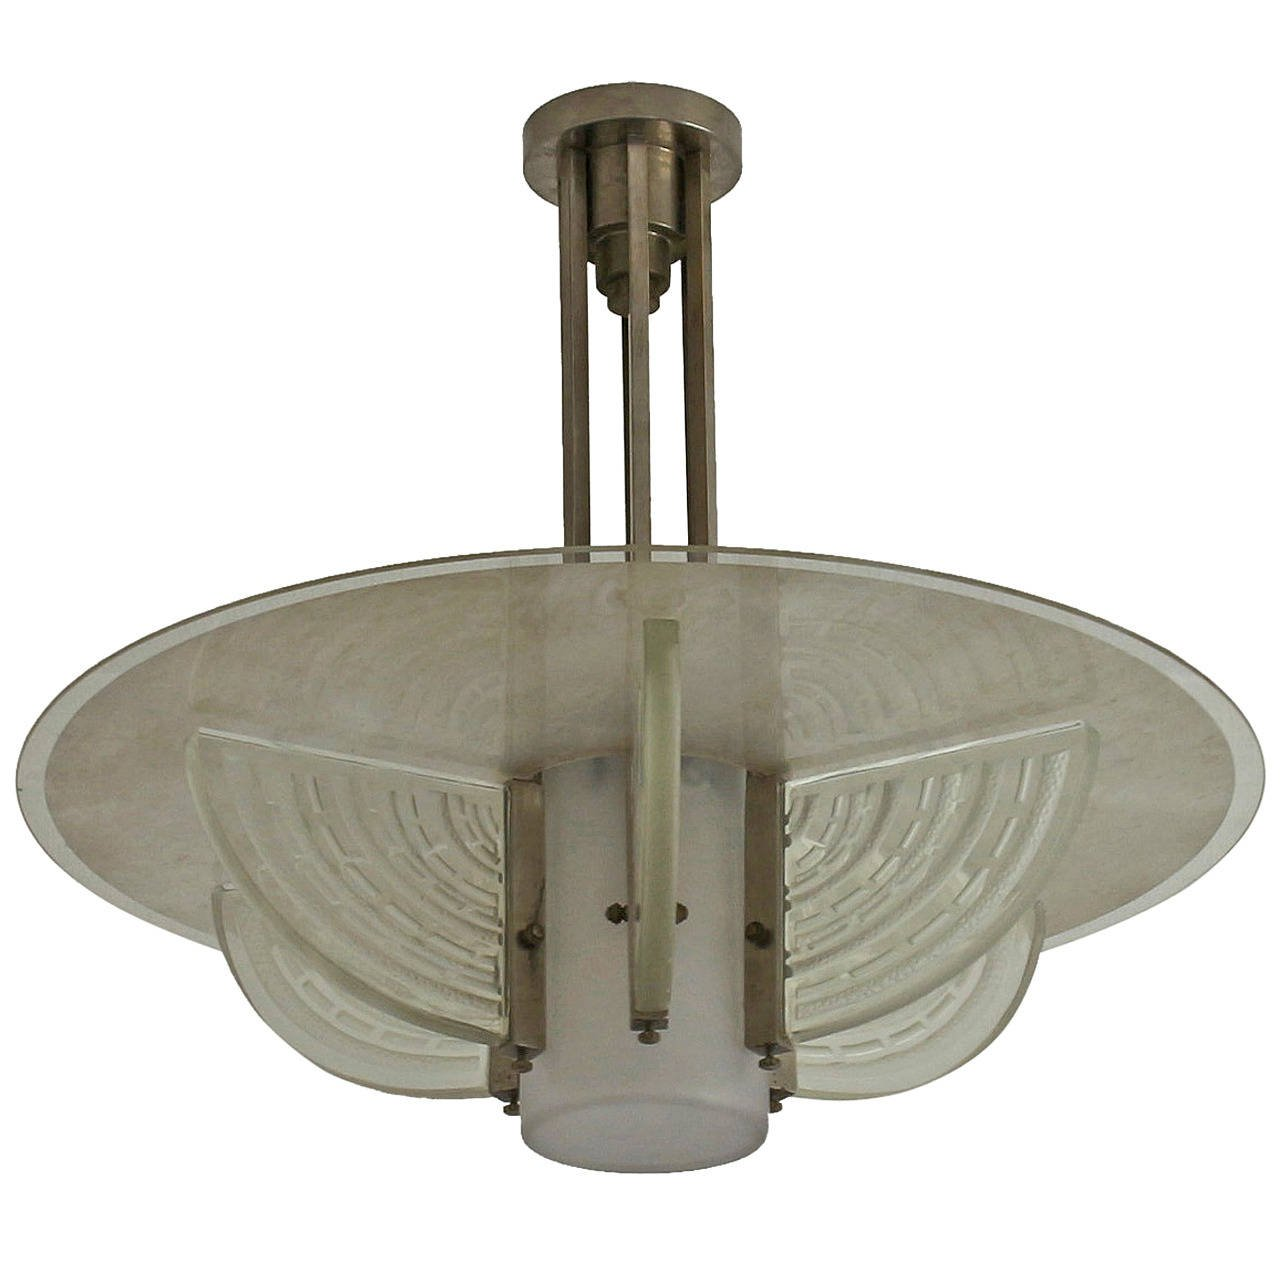 Fine french art deco chandelier by hettier et vincent conjeaud fine french art deco chandelier by hettier et vincent conjeaud chappey arubaitofo Choice Image